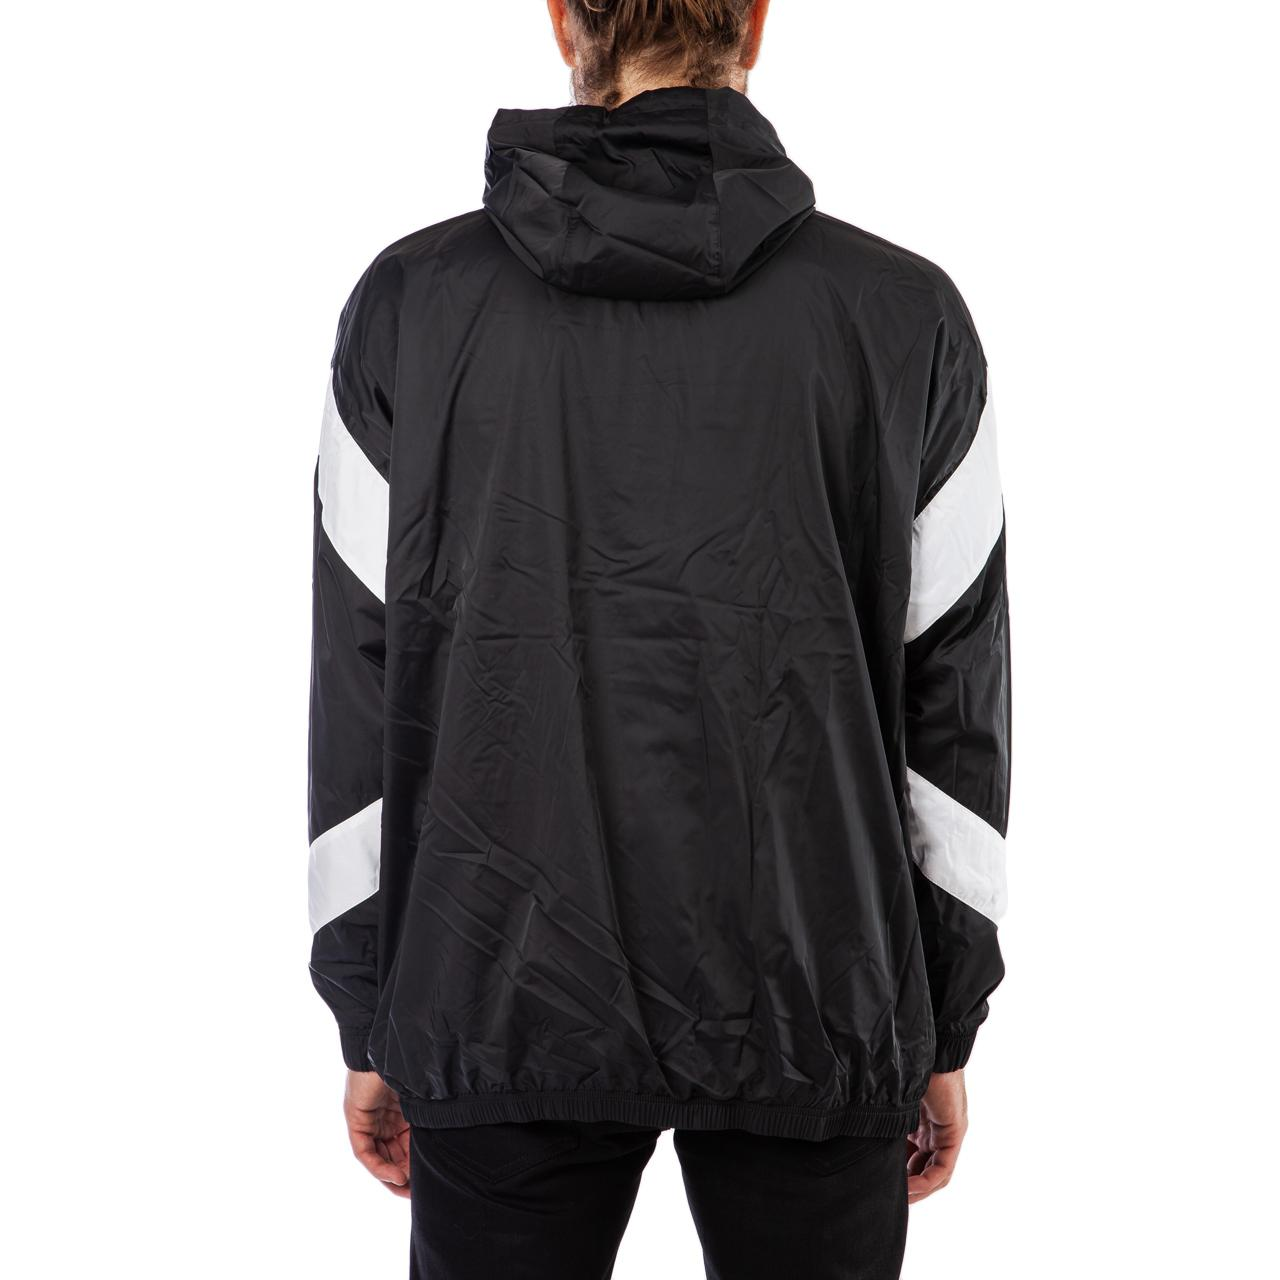 Nike Air Woven Jacket in Black for Men